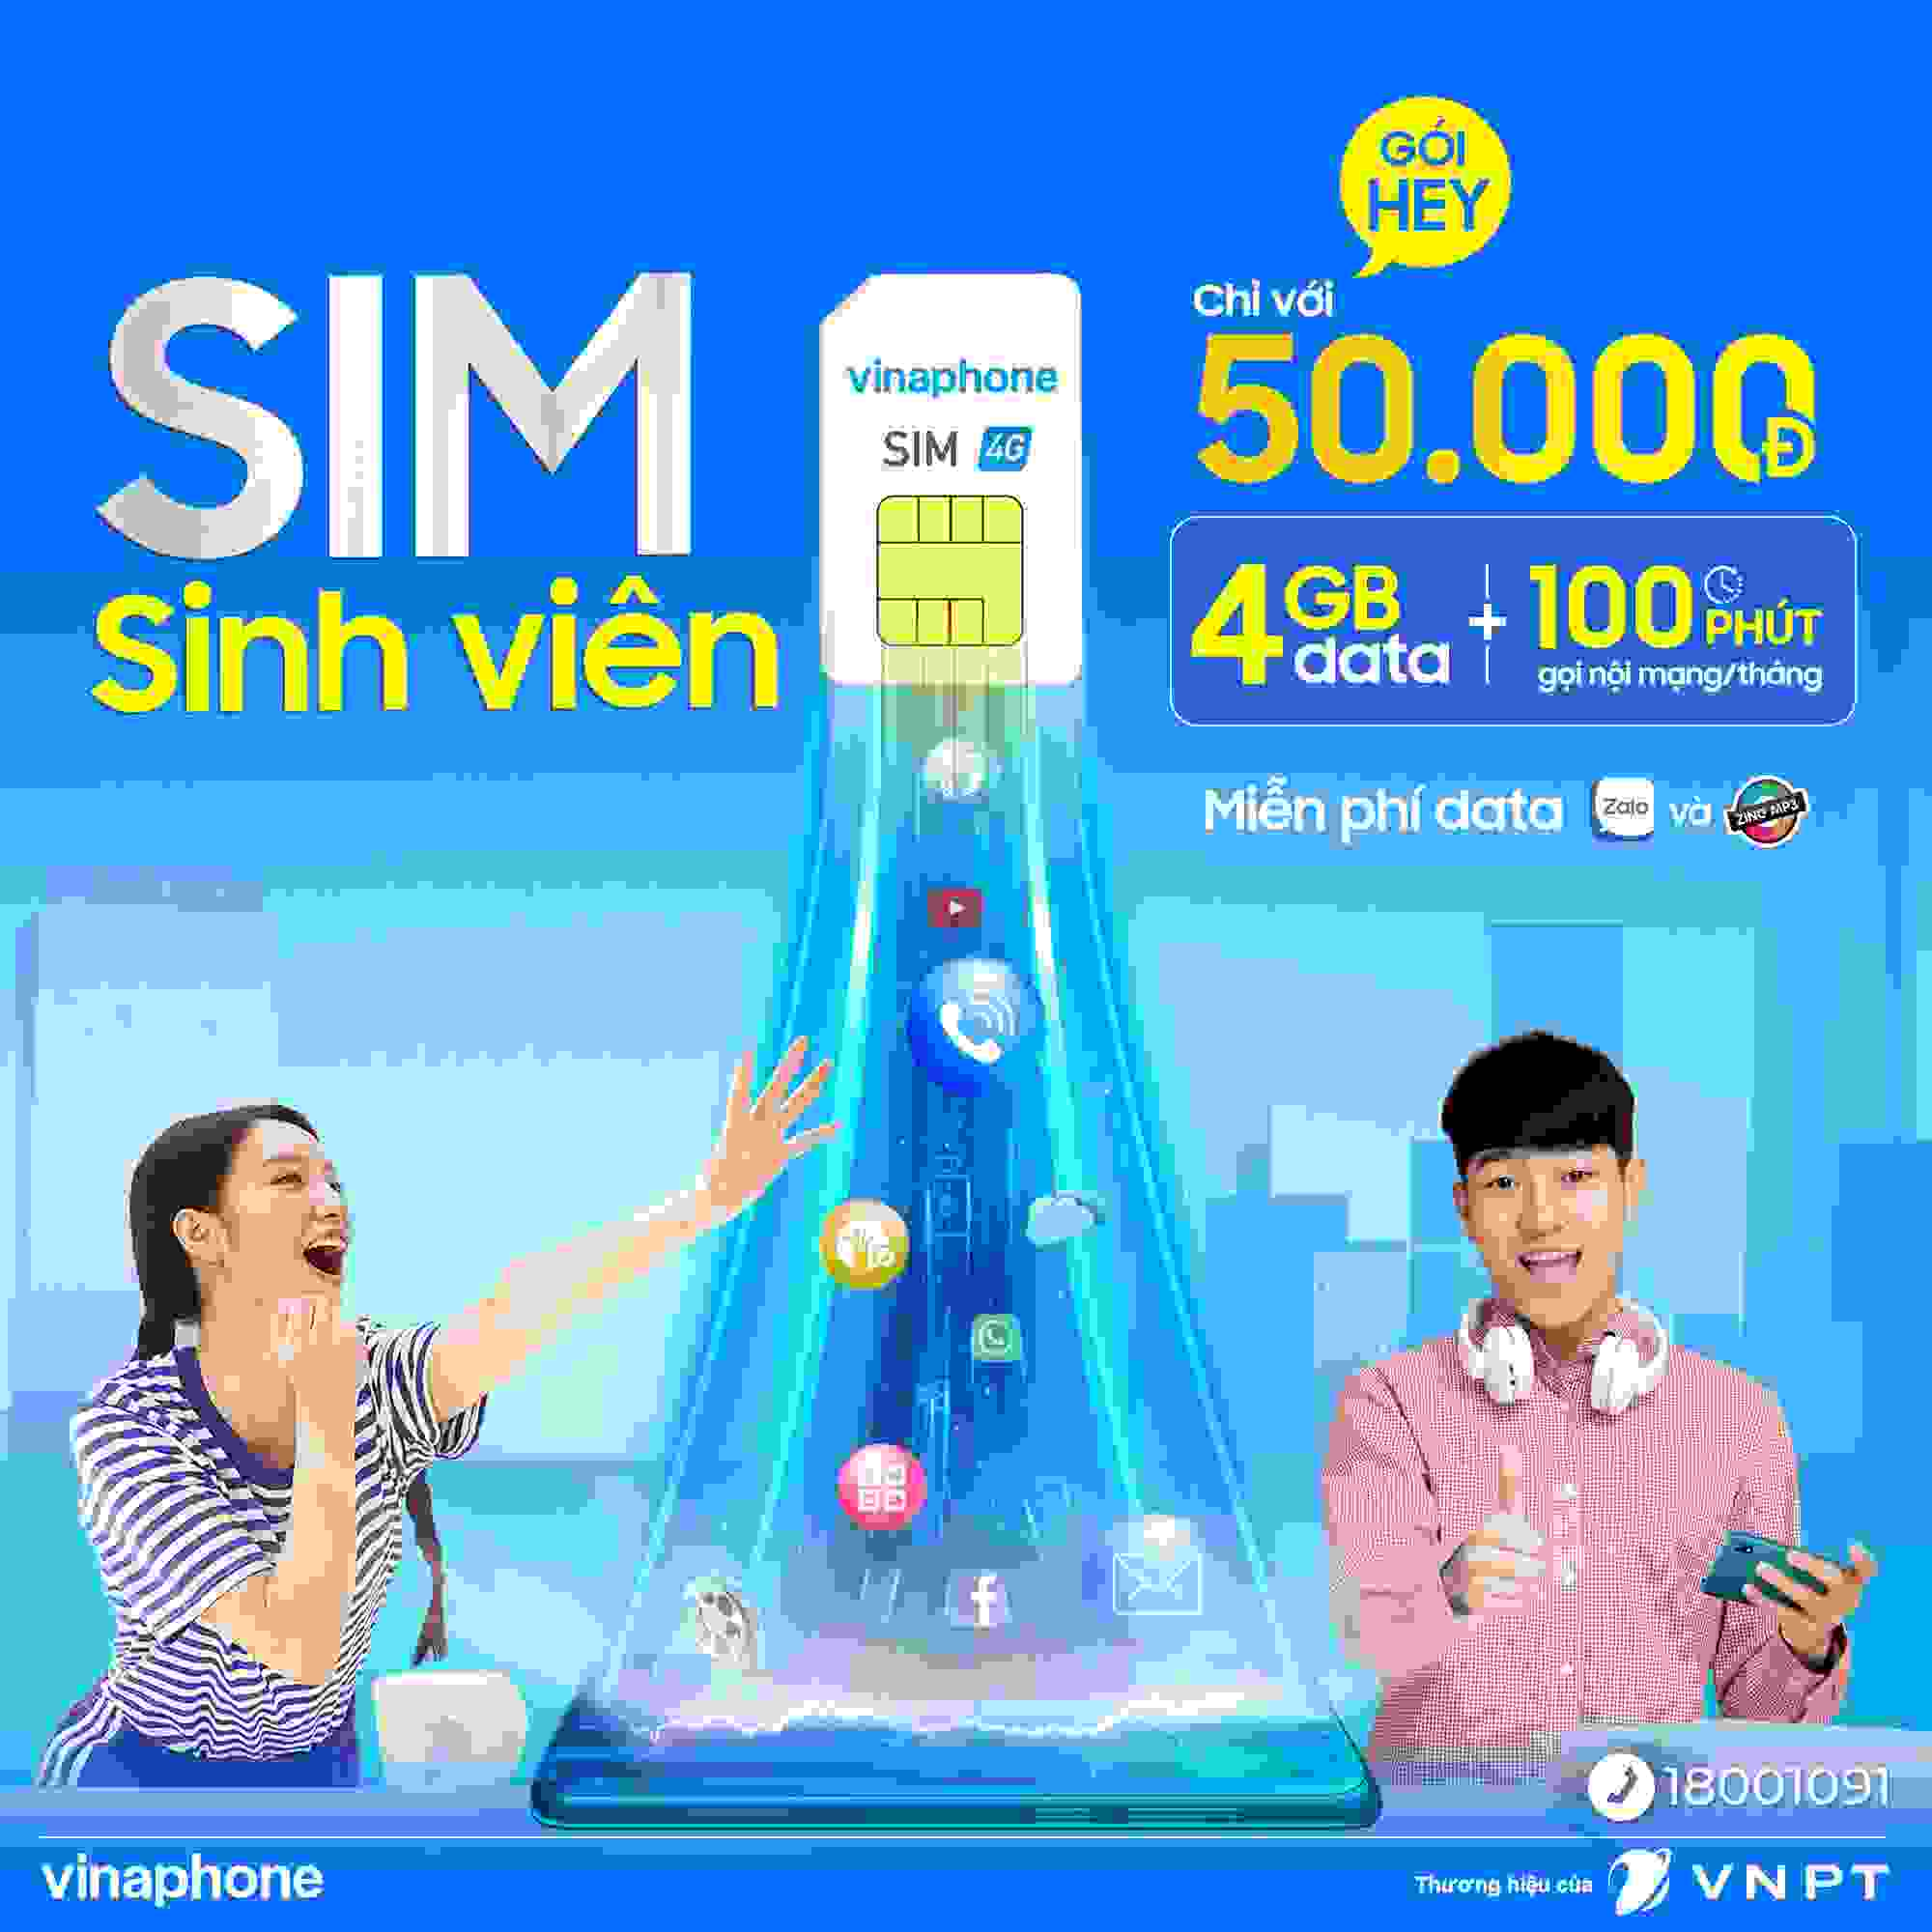 hey_sim-sv-compressed-1571042030.jpg